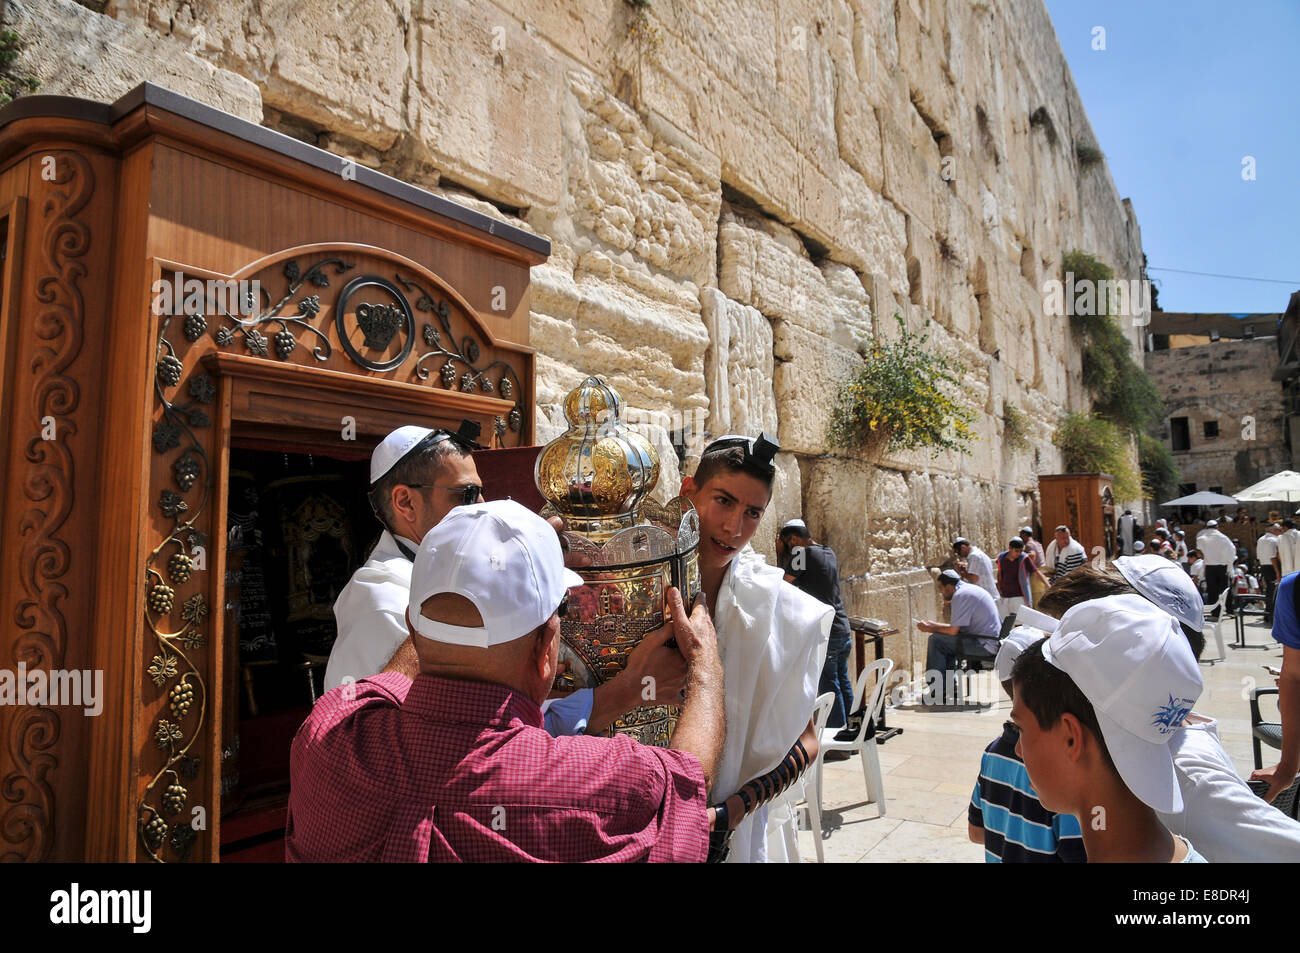 Bar Mitzvah ceremony at the wailing wall, Old City, Jerusalem, Israel - Stock Image